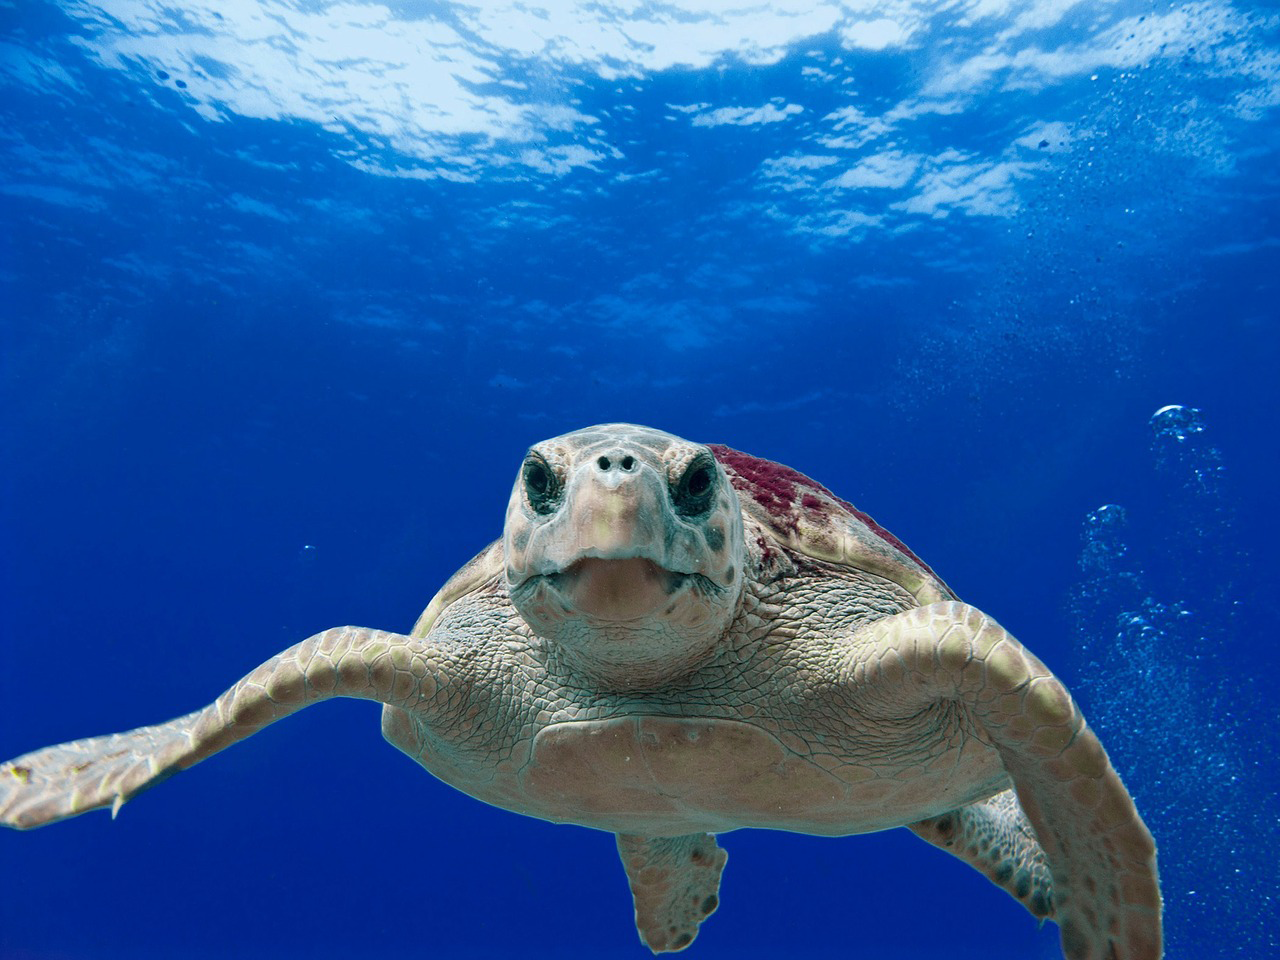 easyJet at loggerheads with endangered turtles image